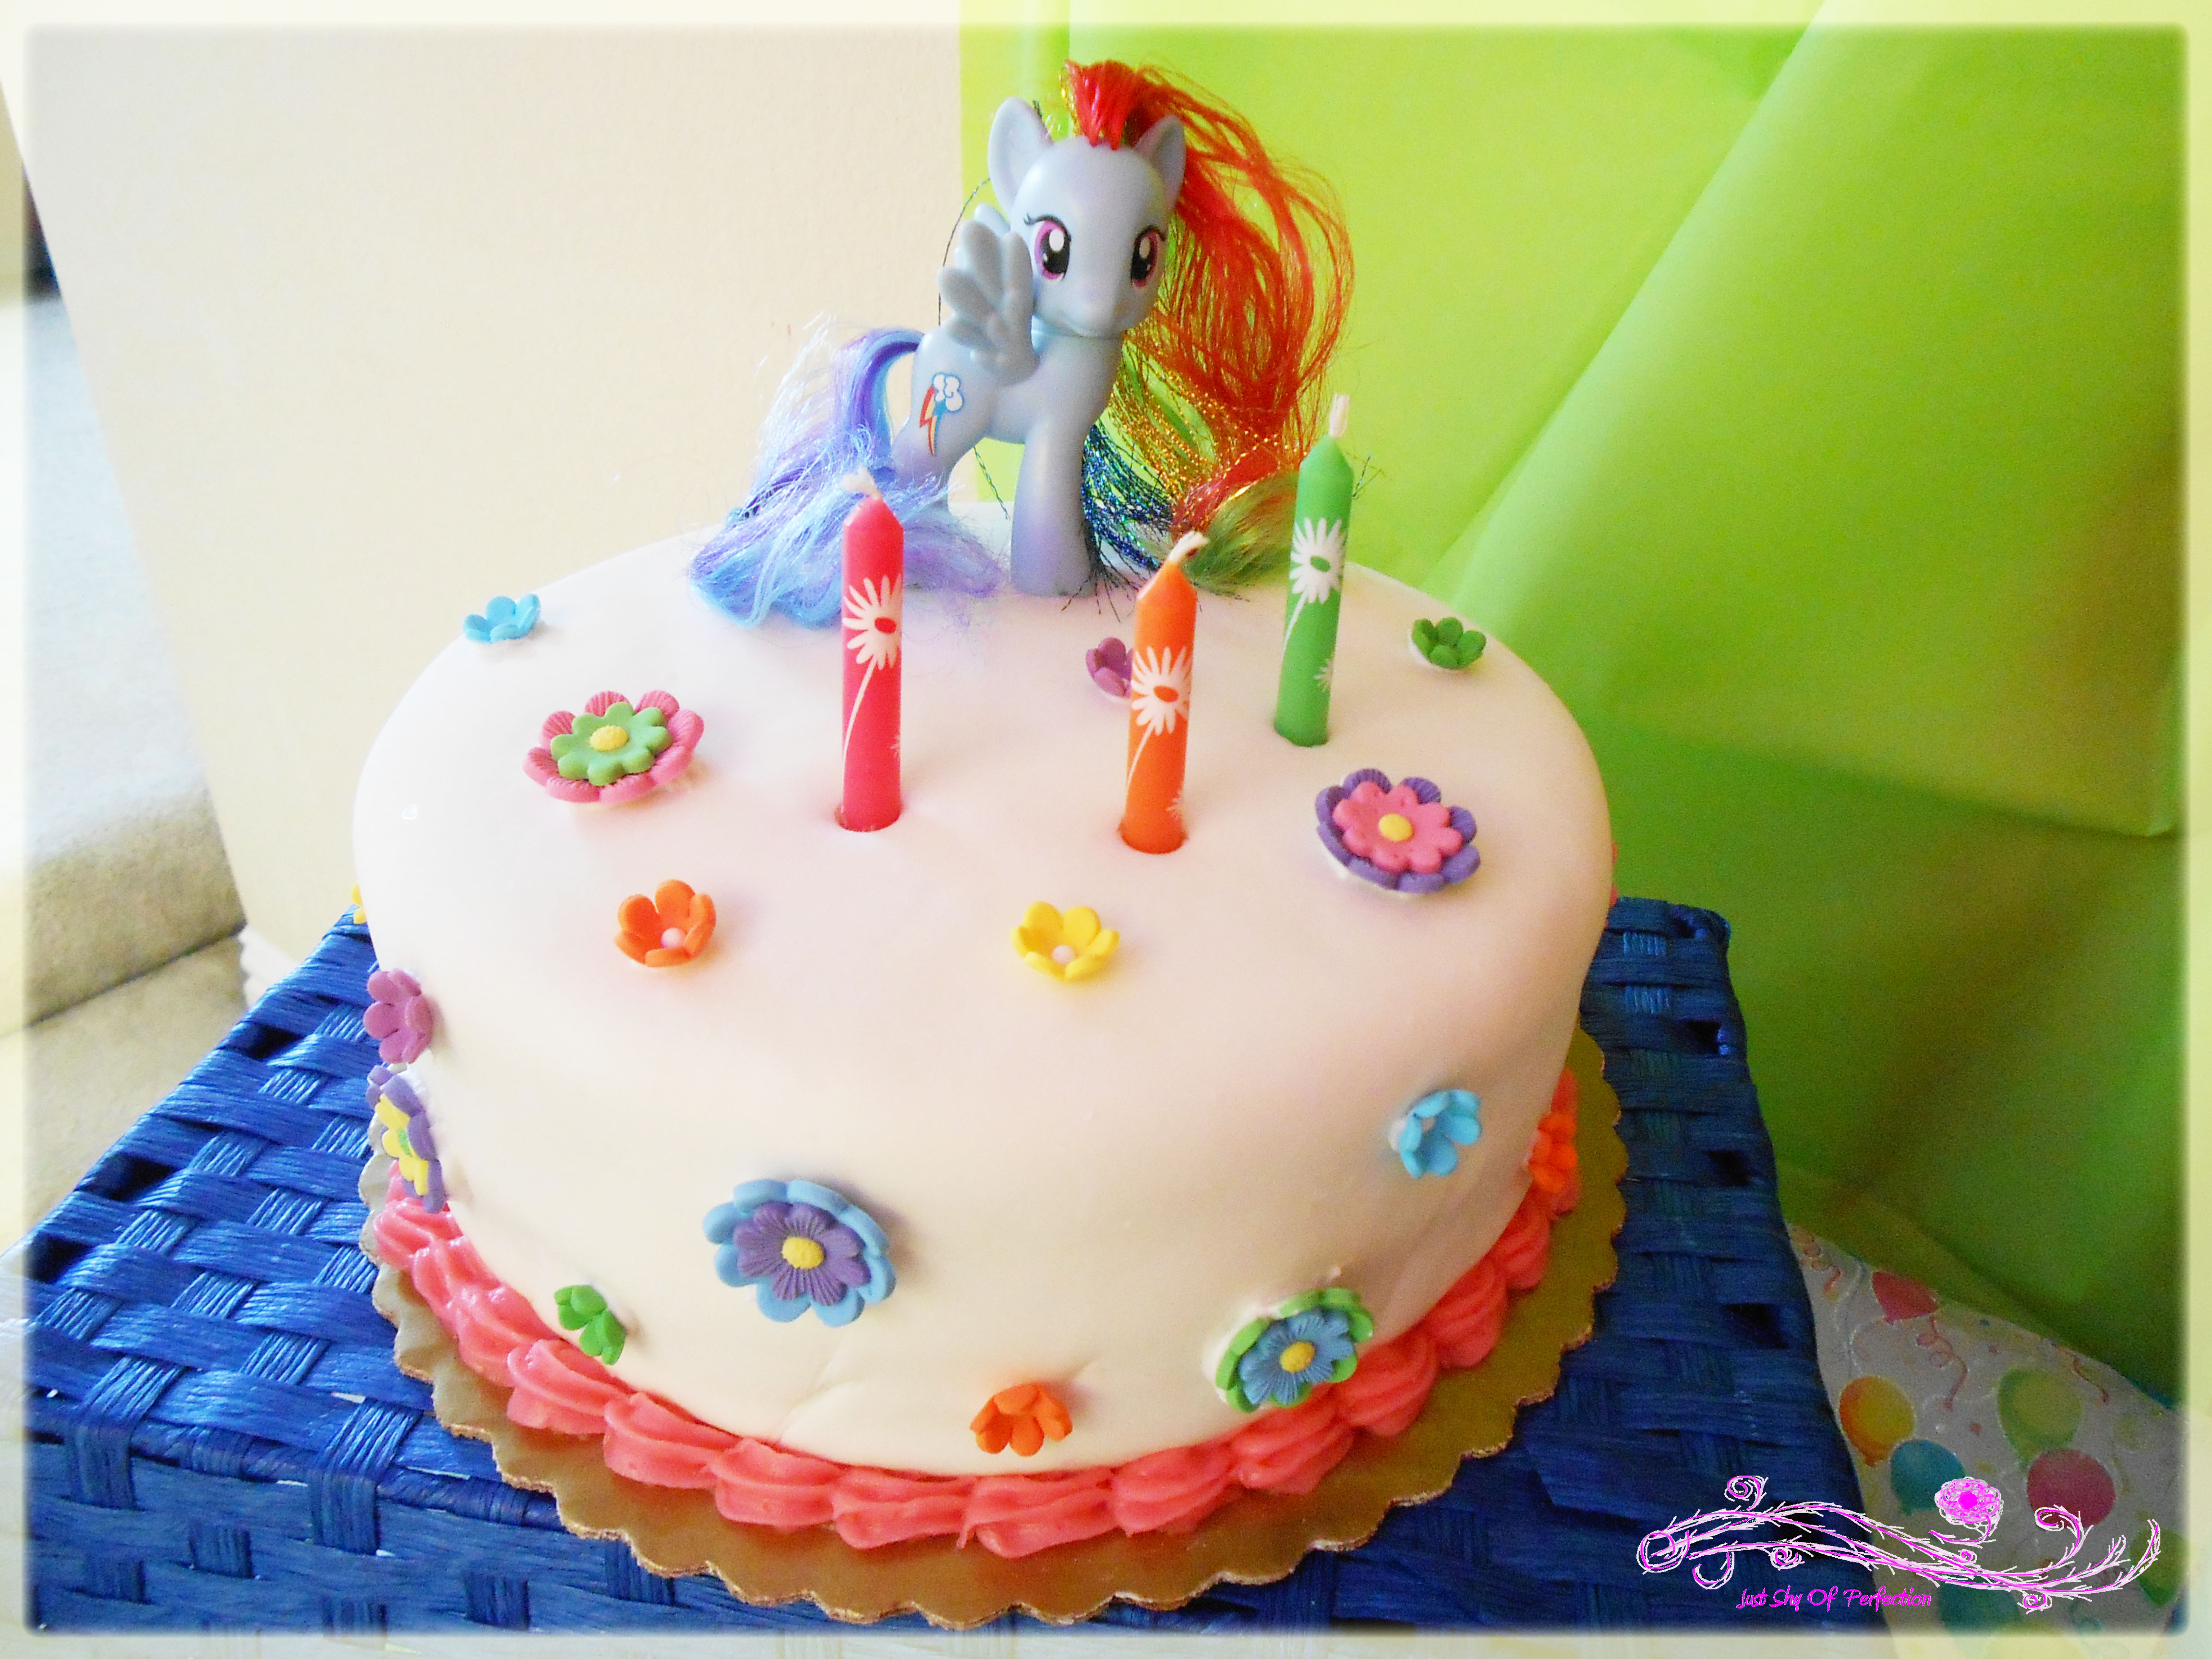 3456 In 32 Great Image Of My Little Pony Birthday Cake